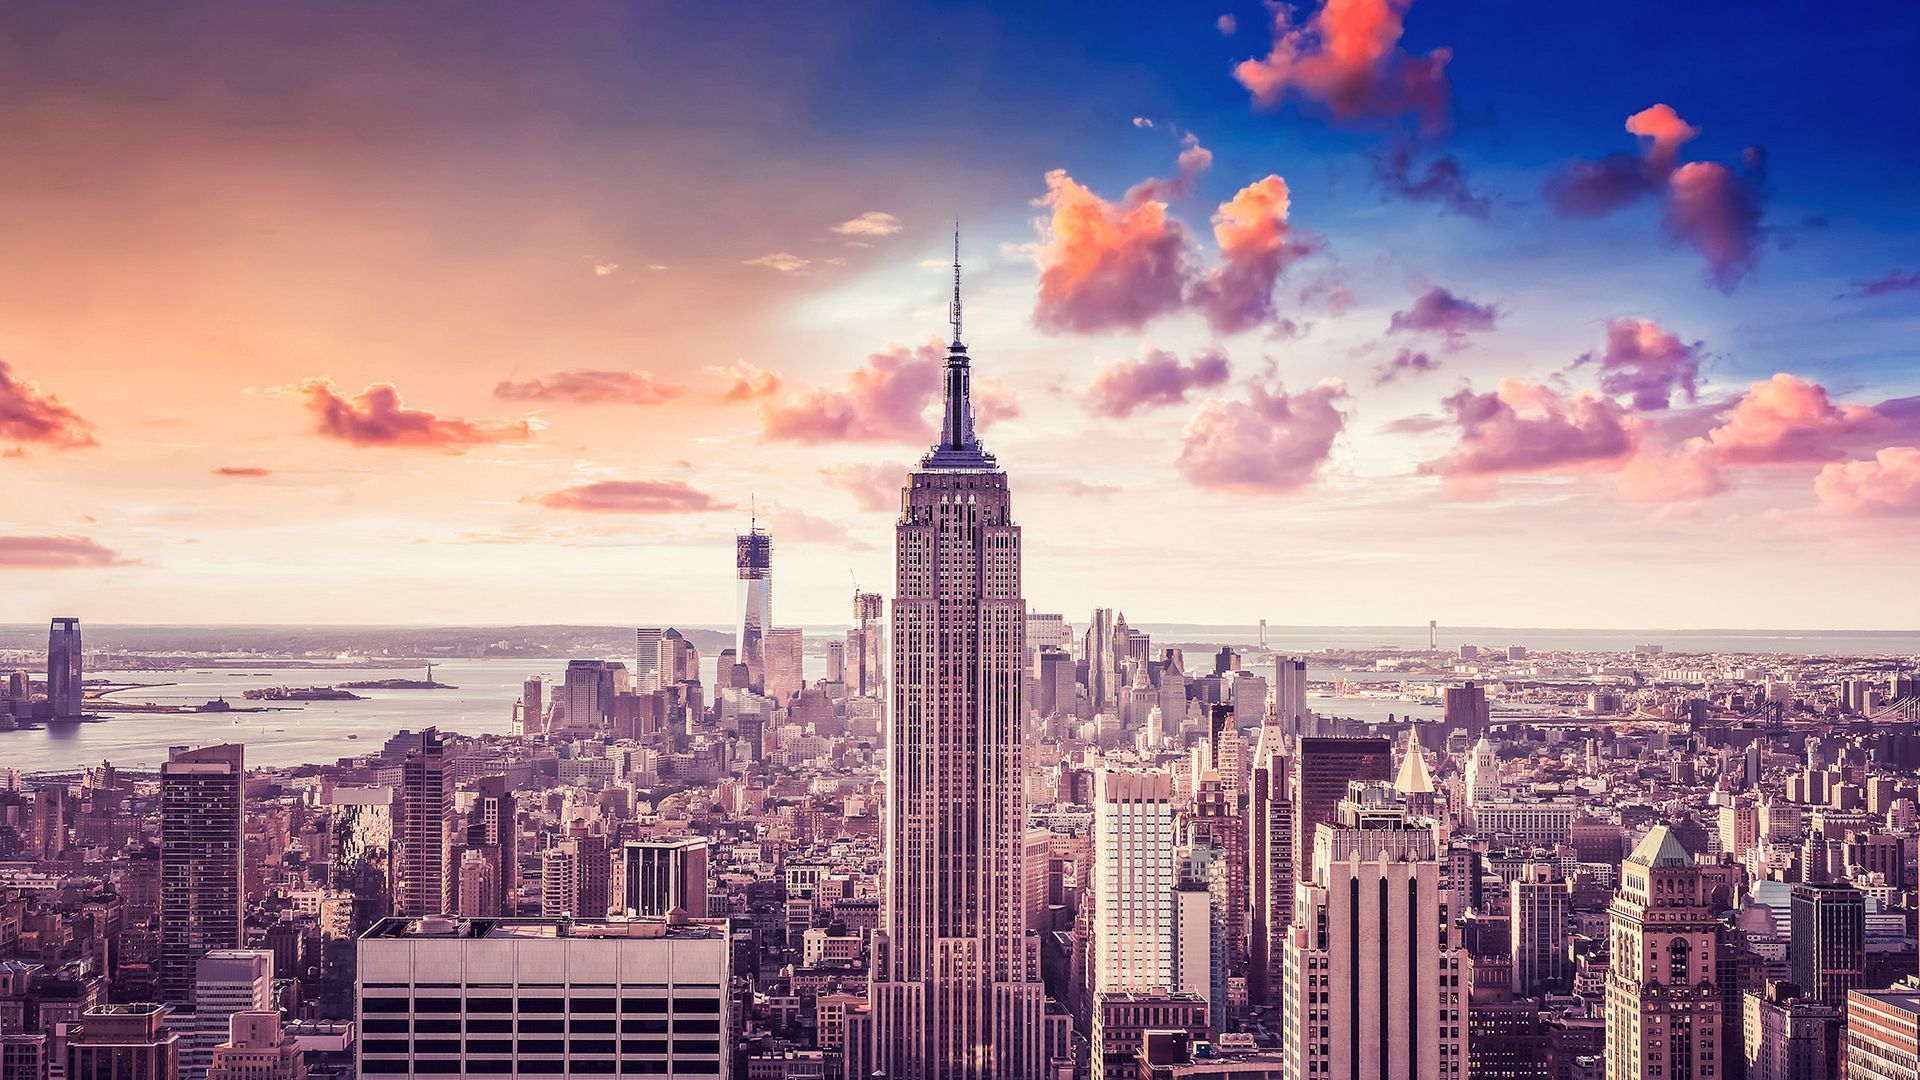 I Ve Become Hooked On The Dream Of Going To New York In The Future And Spending A While There This Is Defiant New York Wallpaper City Wallpaper York Wallpaper